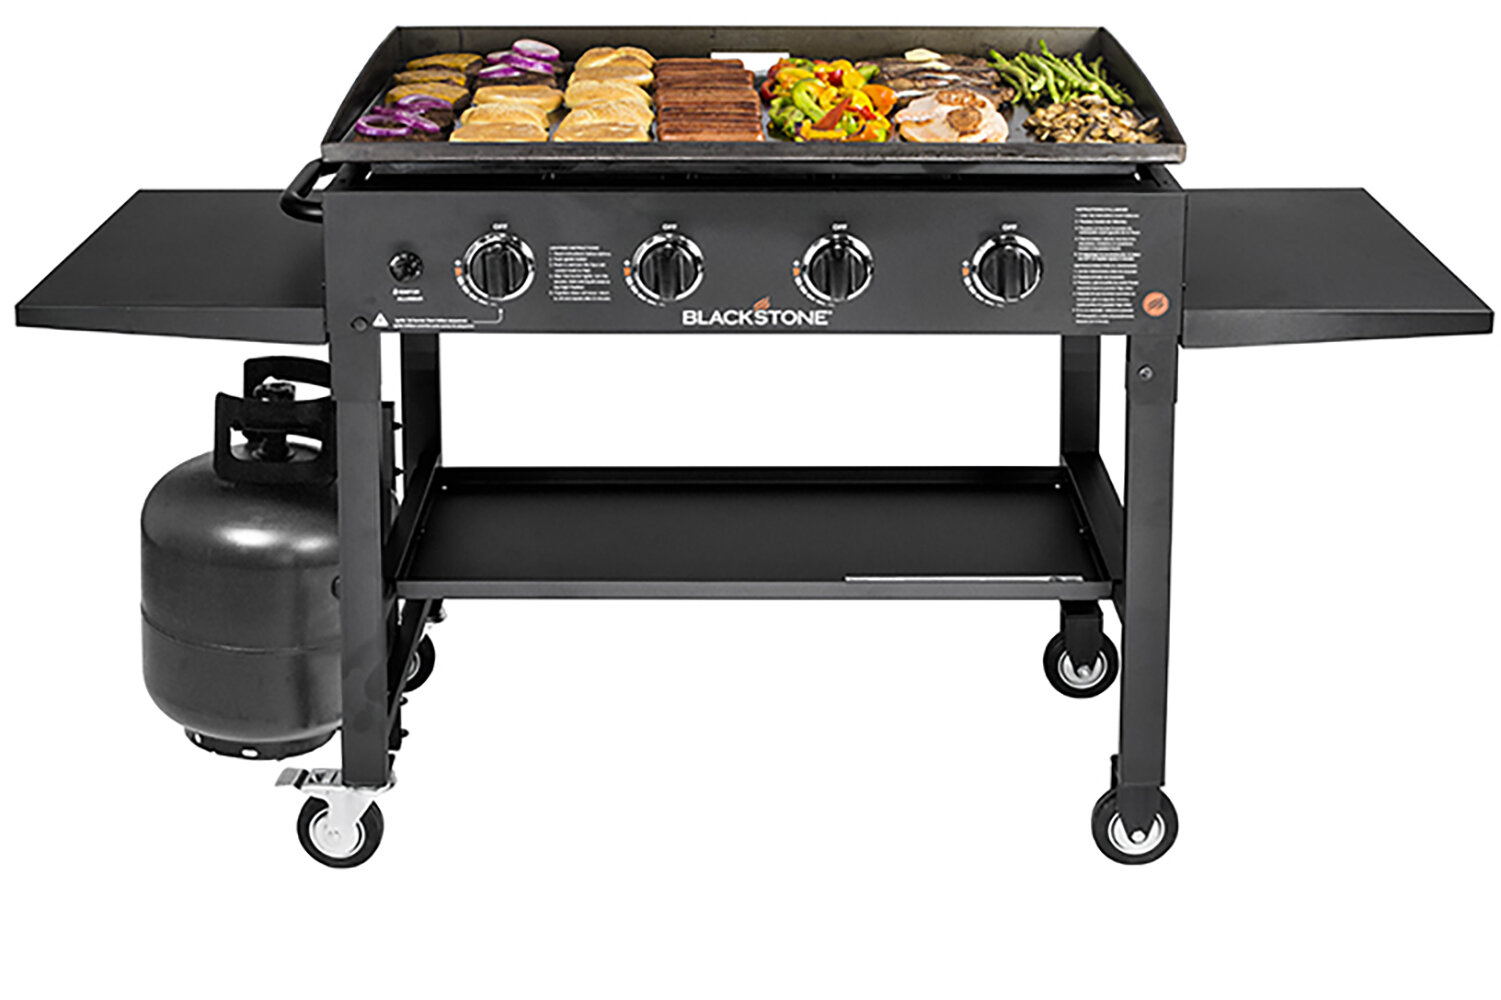 Blackstone Griddle Cooking Station 4 Burner Flat Top Propane Gas Grill With Side Shelves Reviews Wayfair